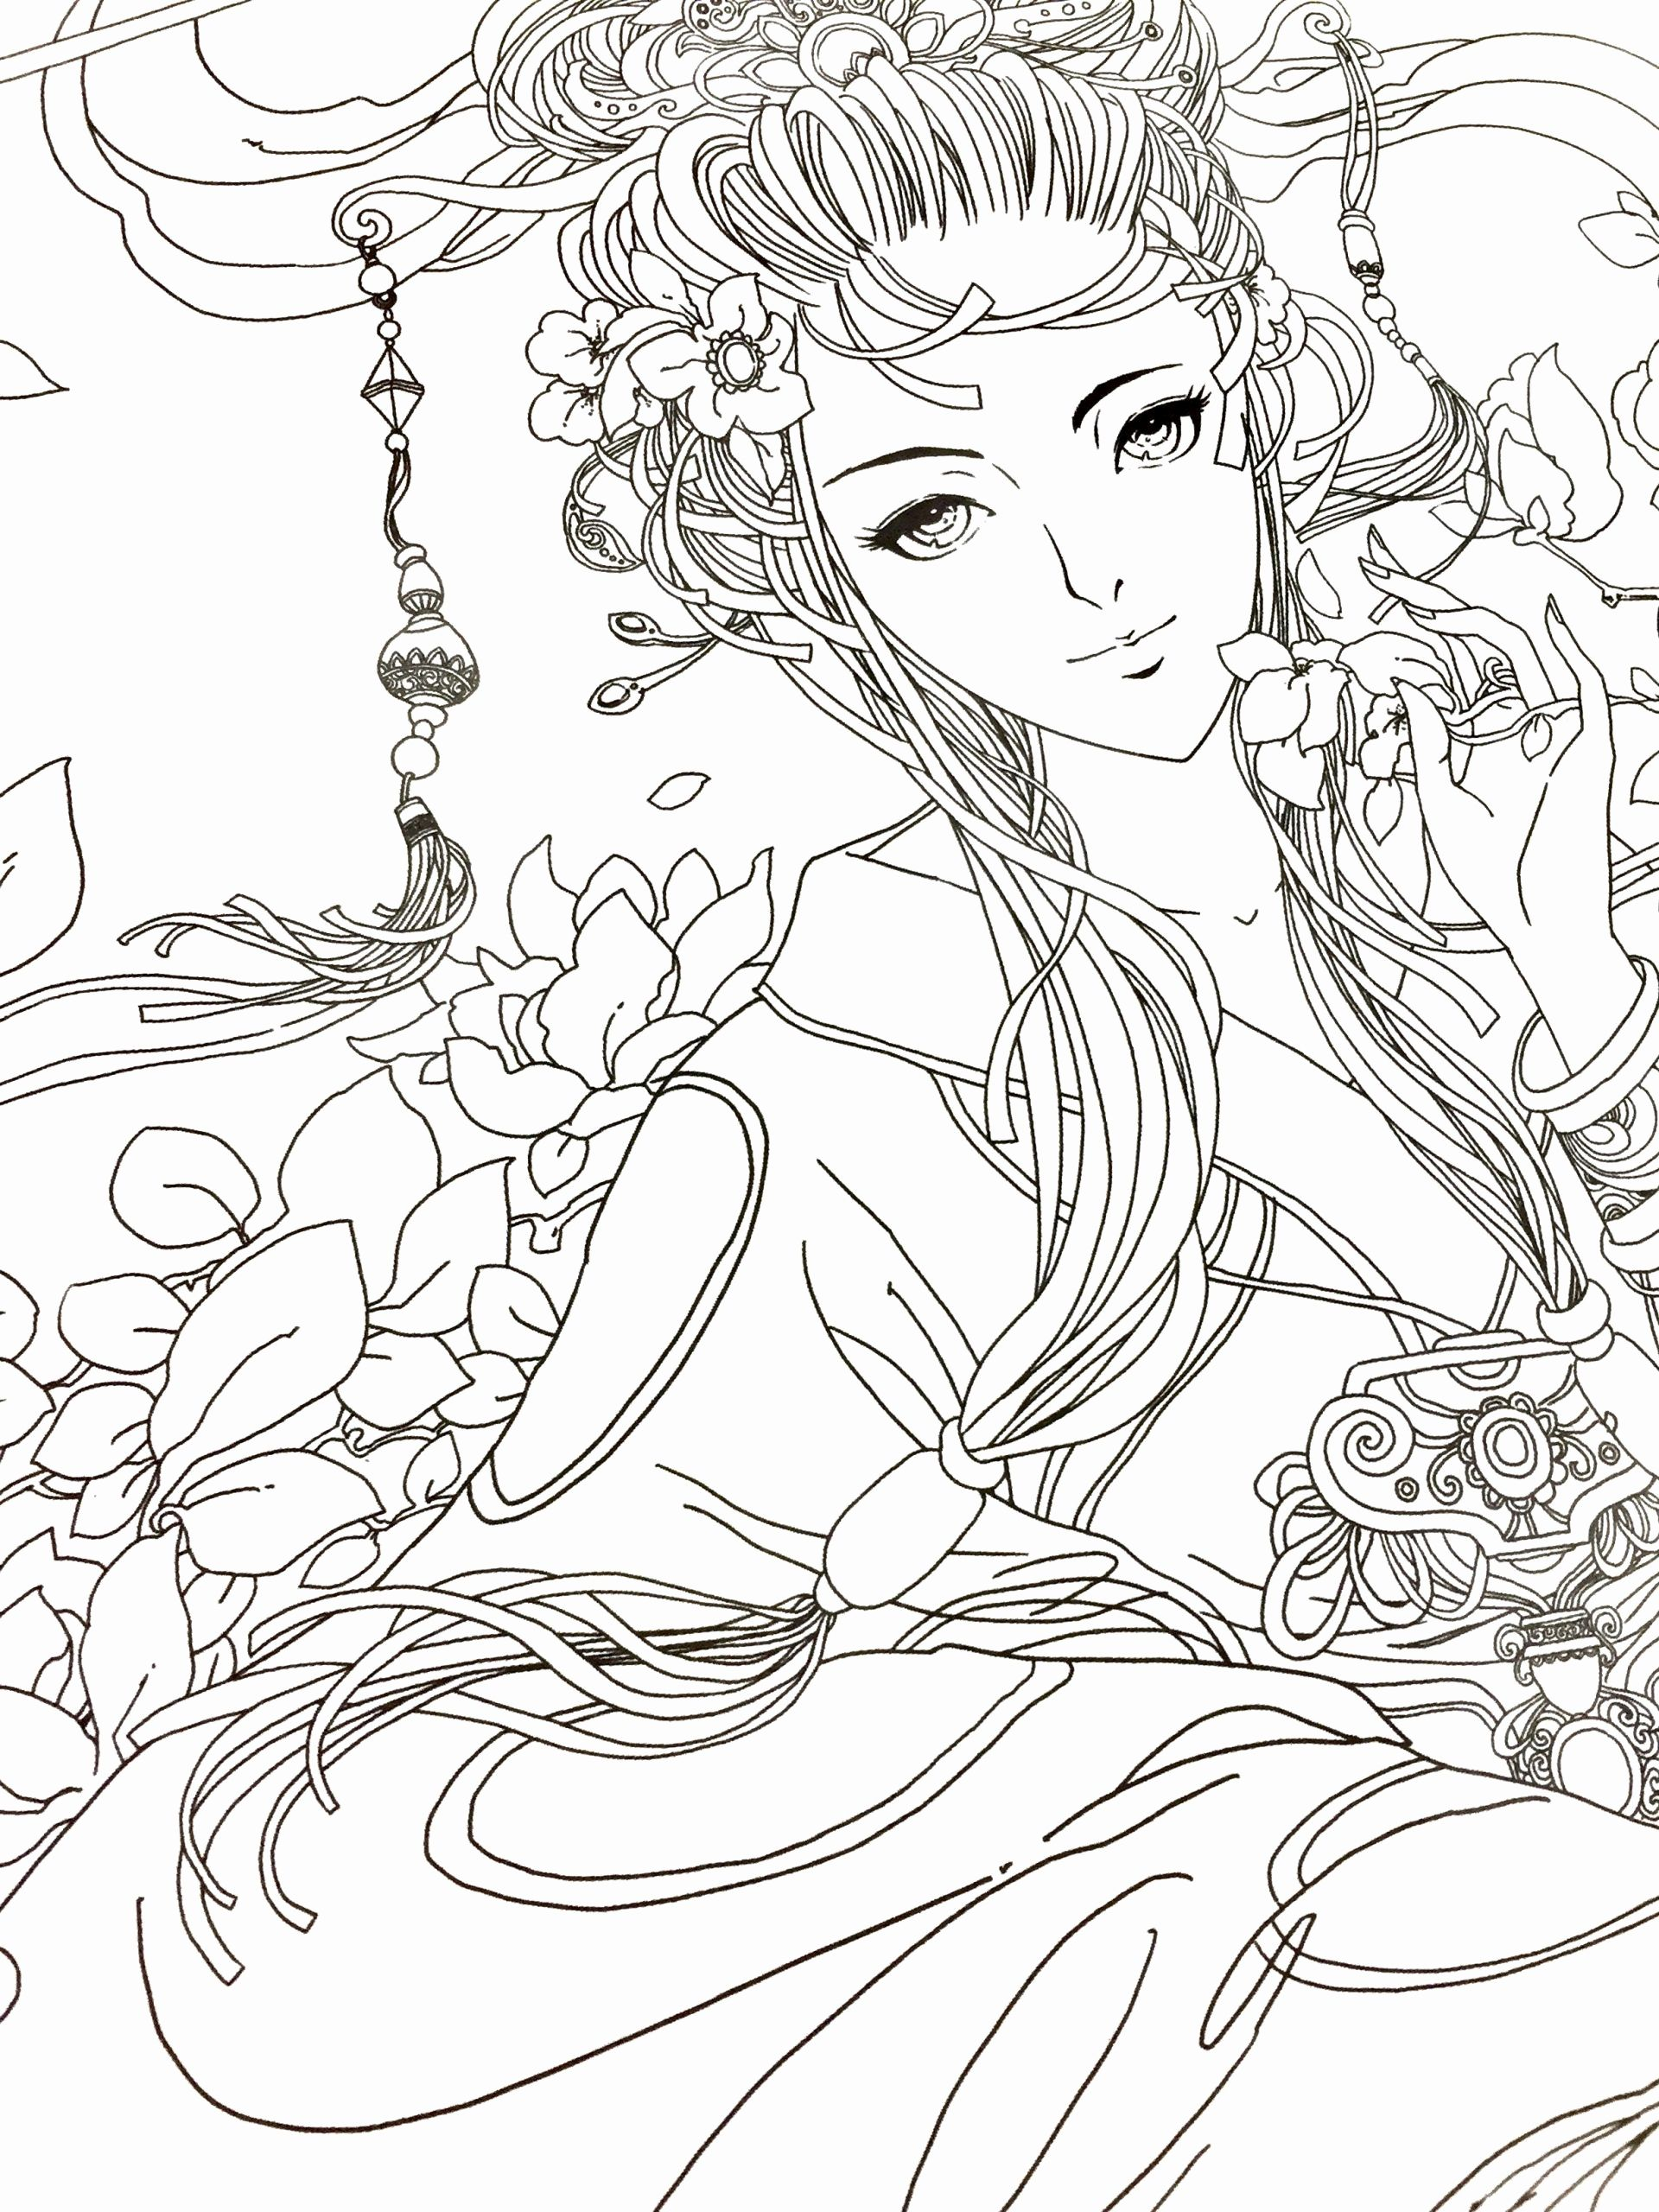 Anime Cat Coloring Pages Elegant Coloring Pages Japanese Anime Coloring Book Cat Girl Free Coloring Pages Coloring Books Colouring Pages